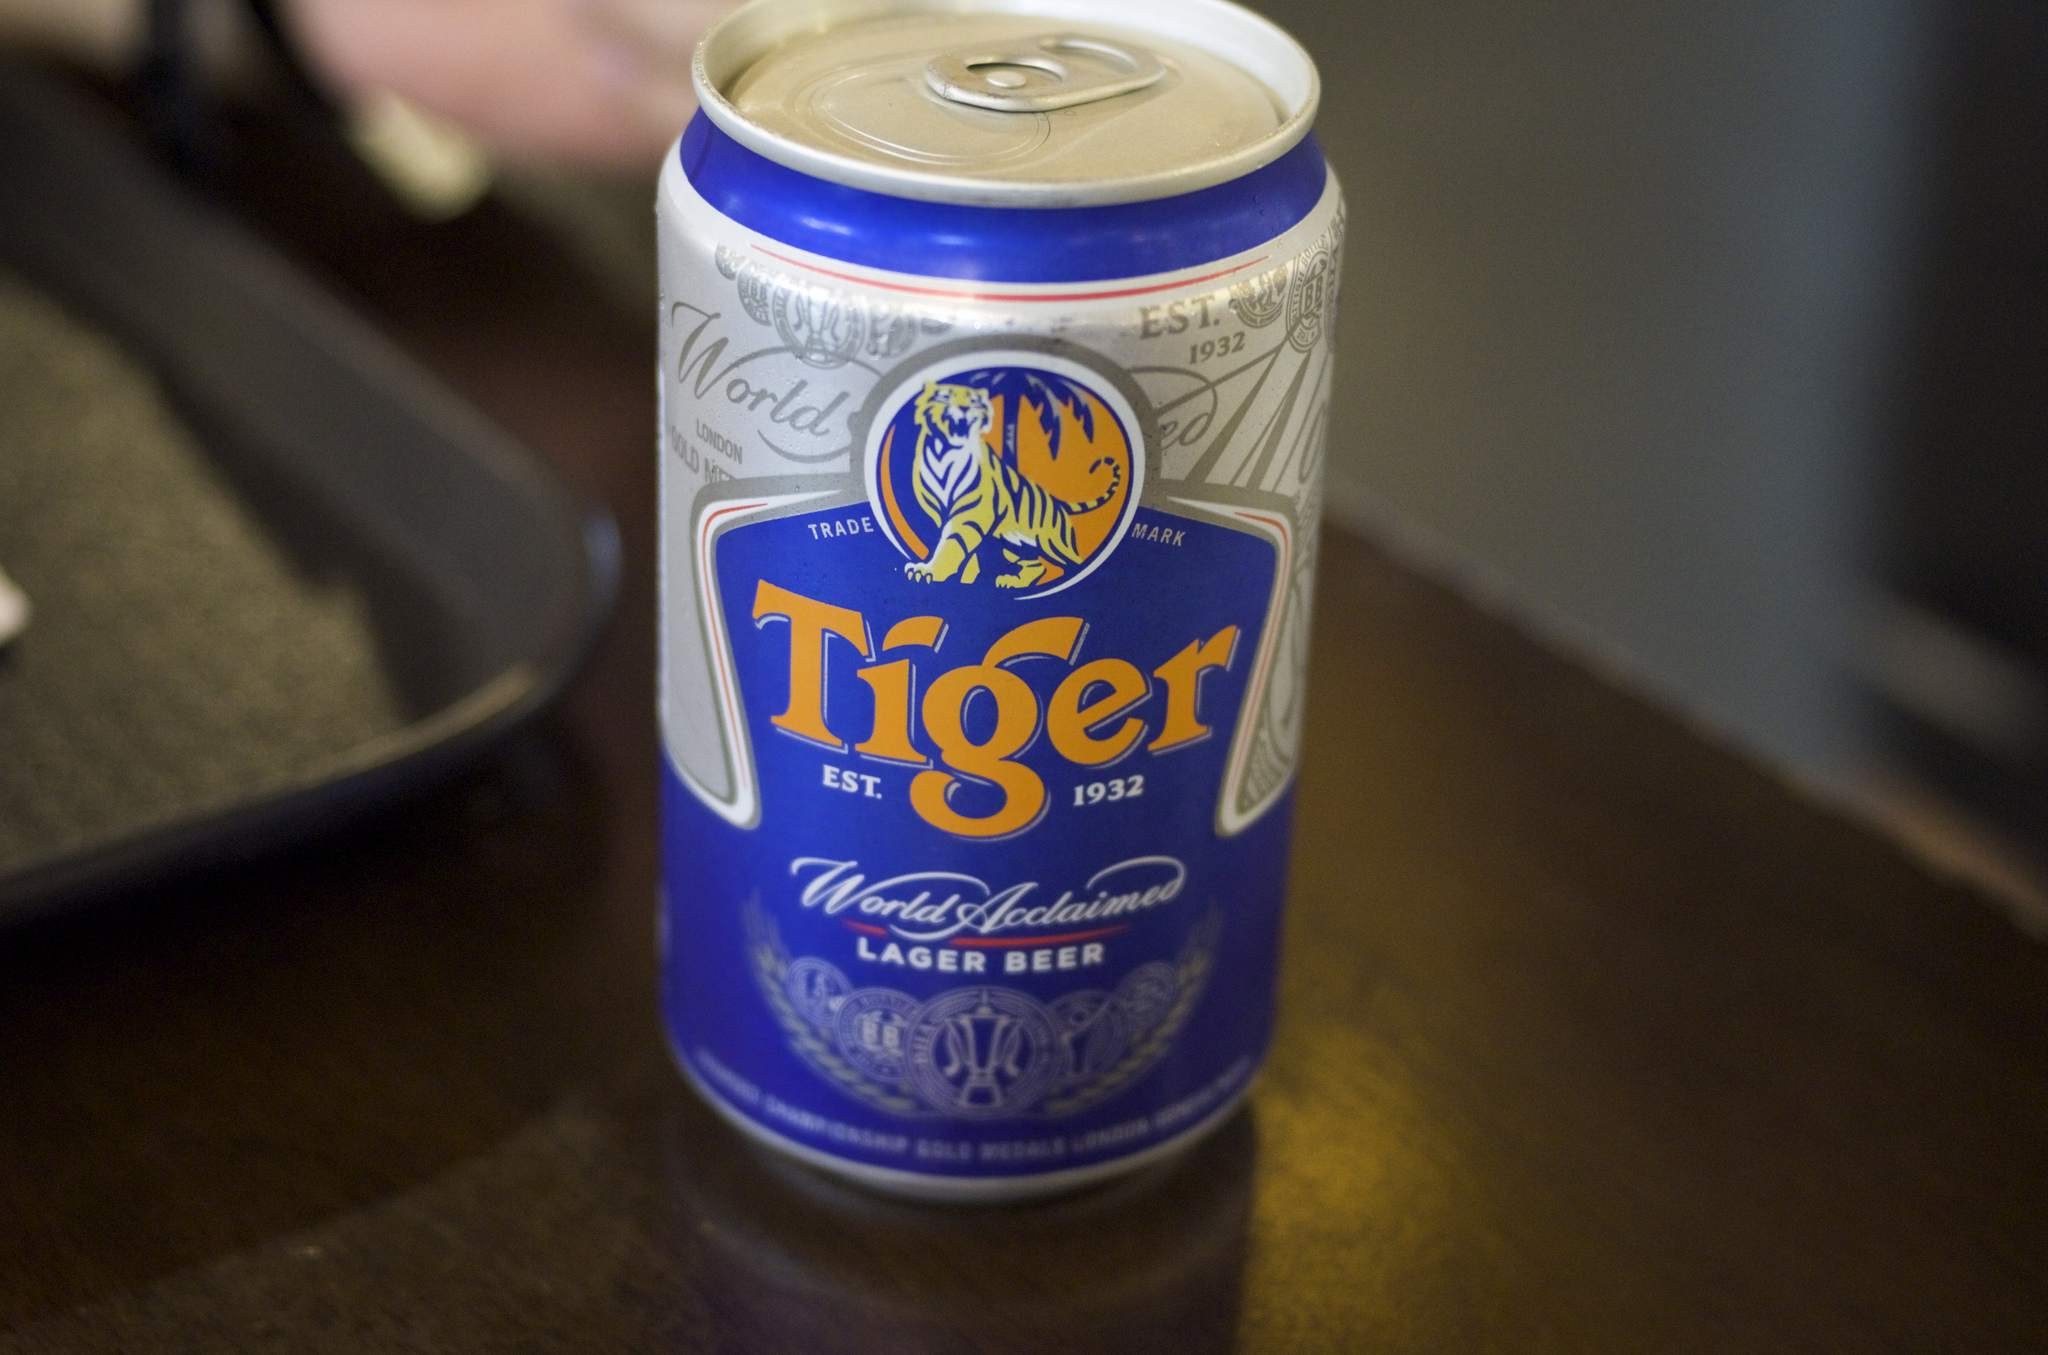 tiger beer background Welcome to r/golf i dont need to meet new people post anything golf related if you don't see your post, it's probably because your account has low karma and automoderator removed it.